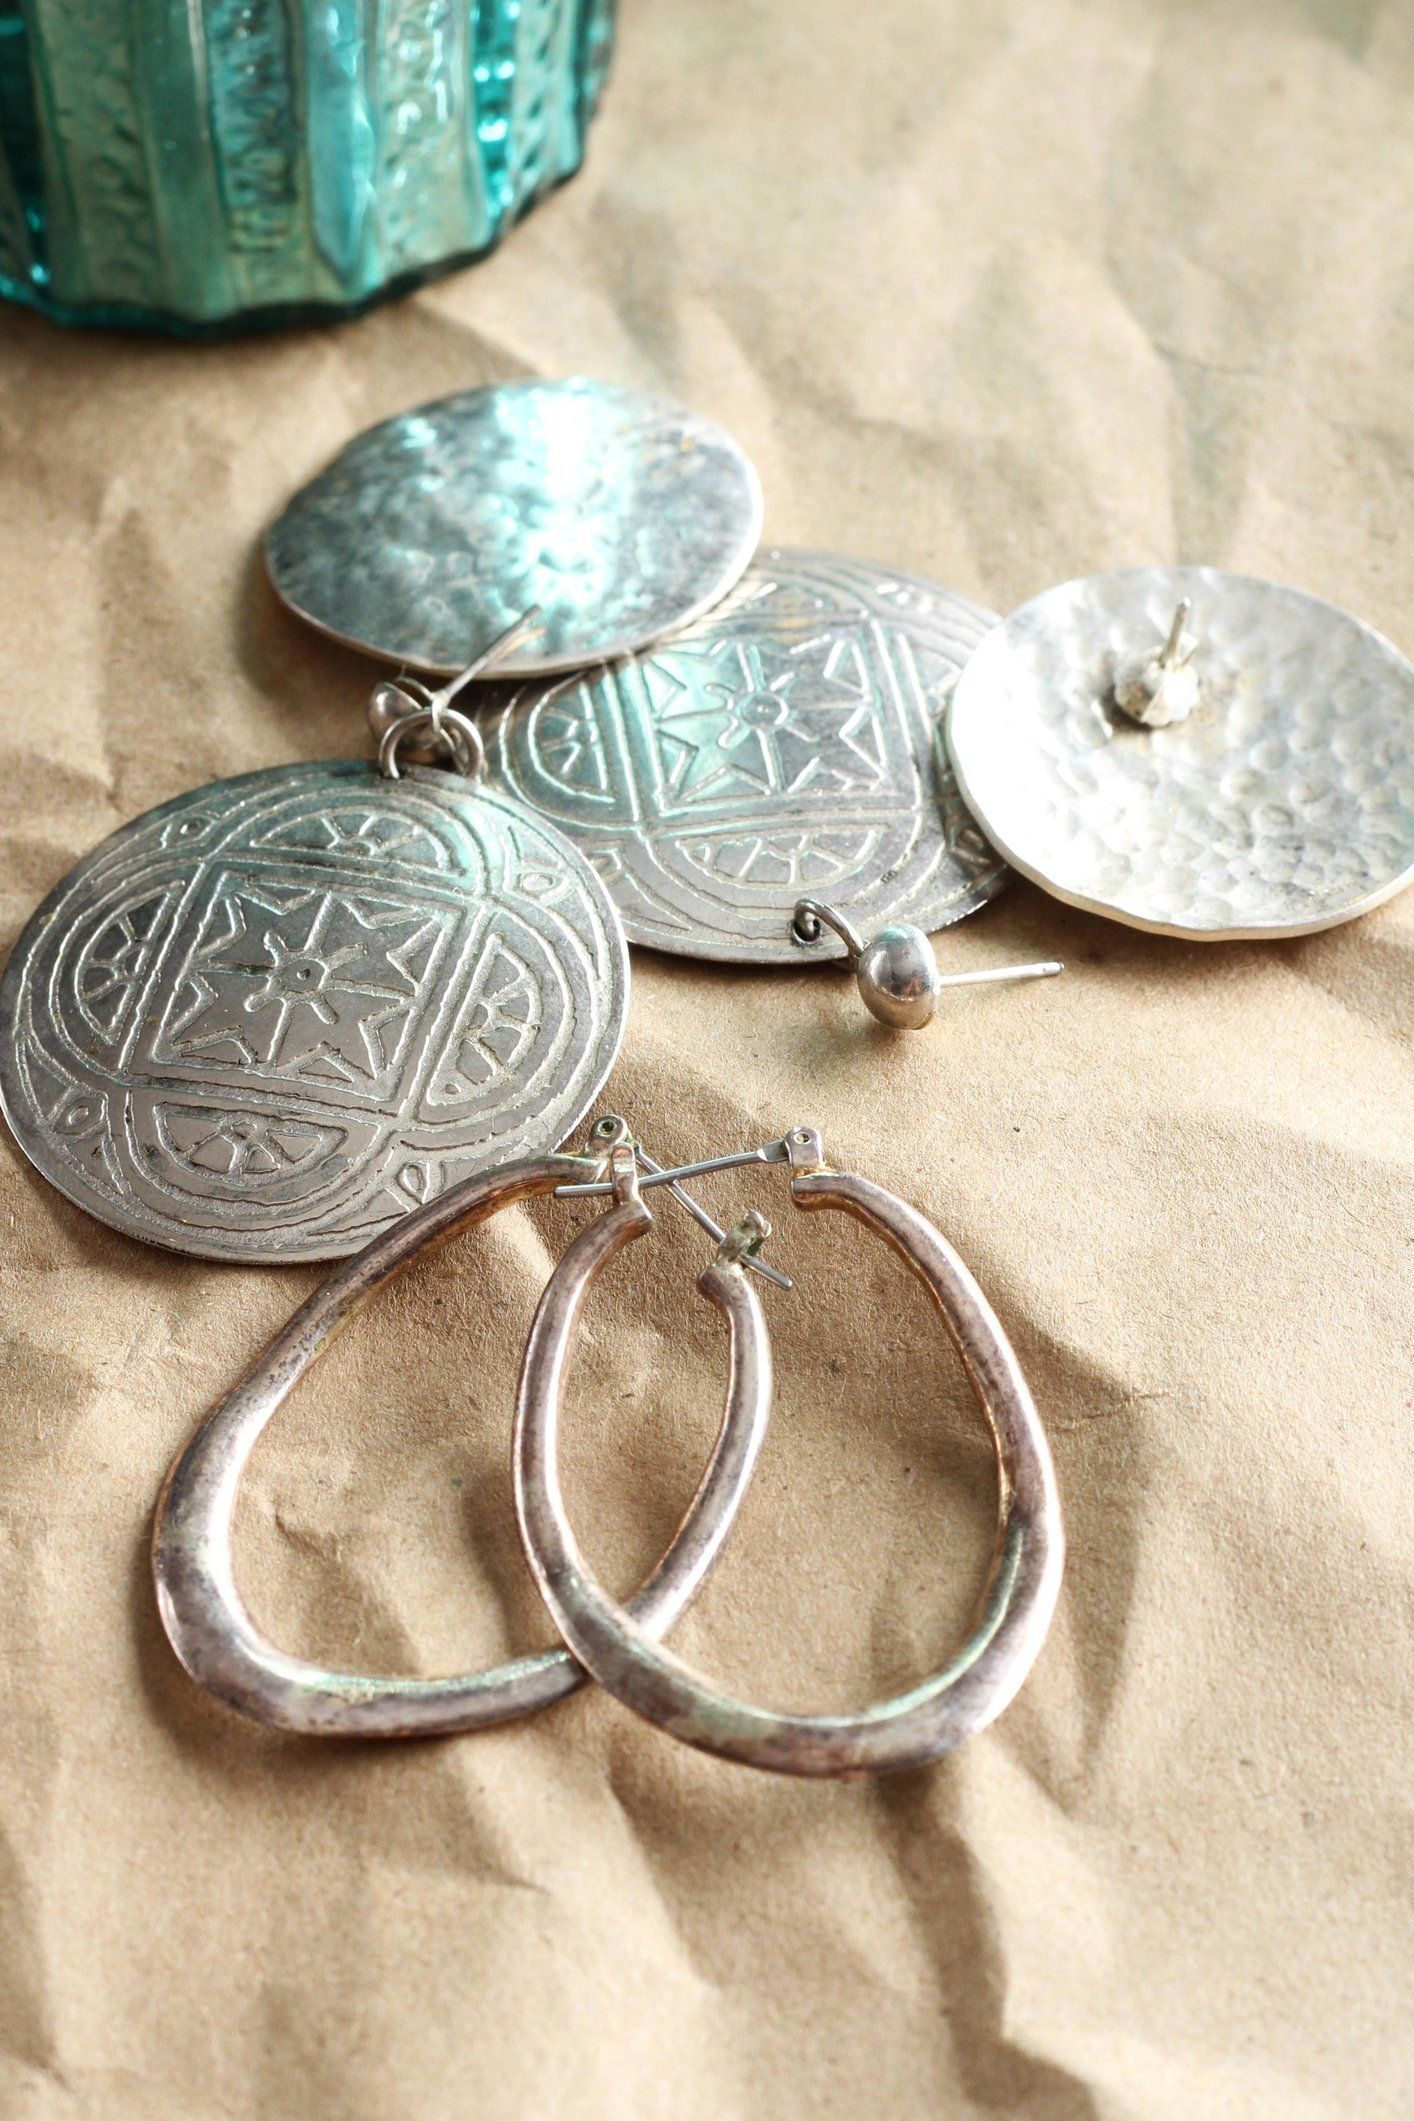 An easy inexpensive method how to clean silver jewelry